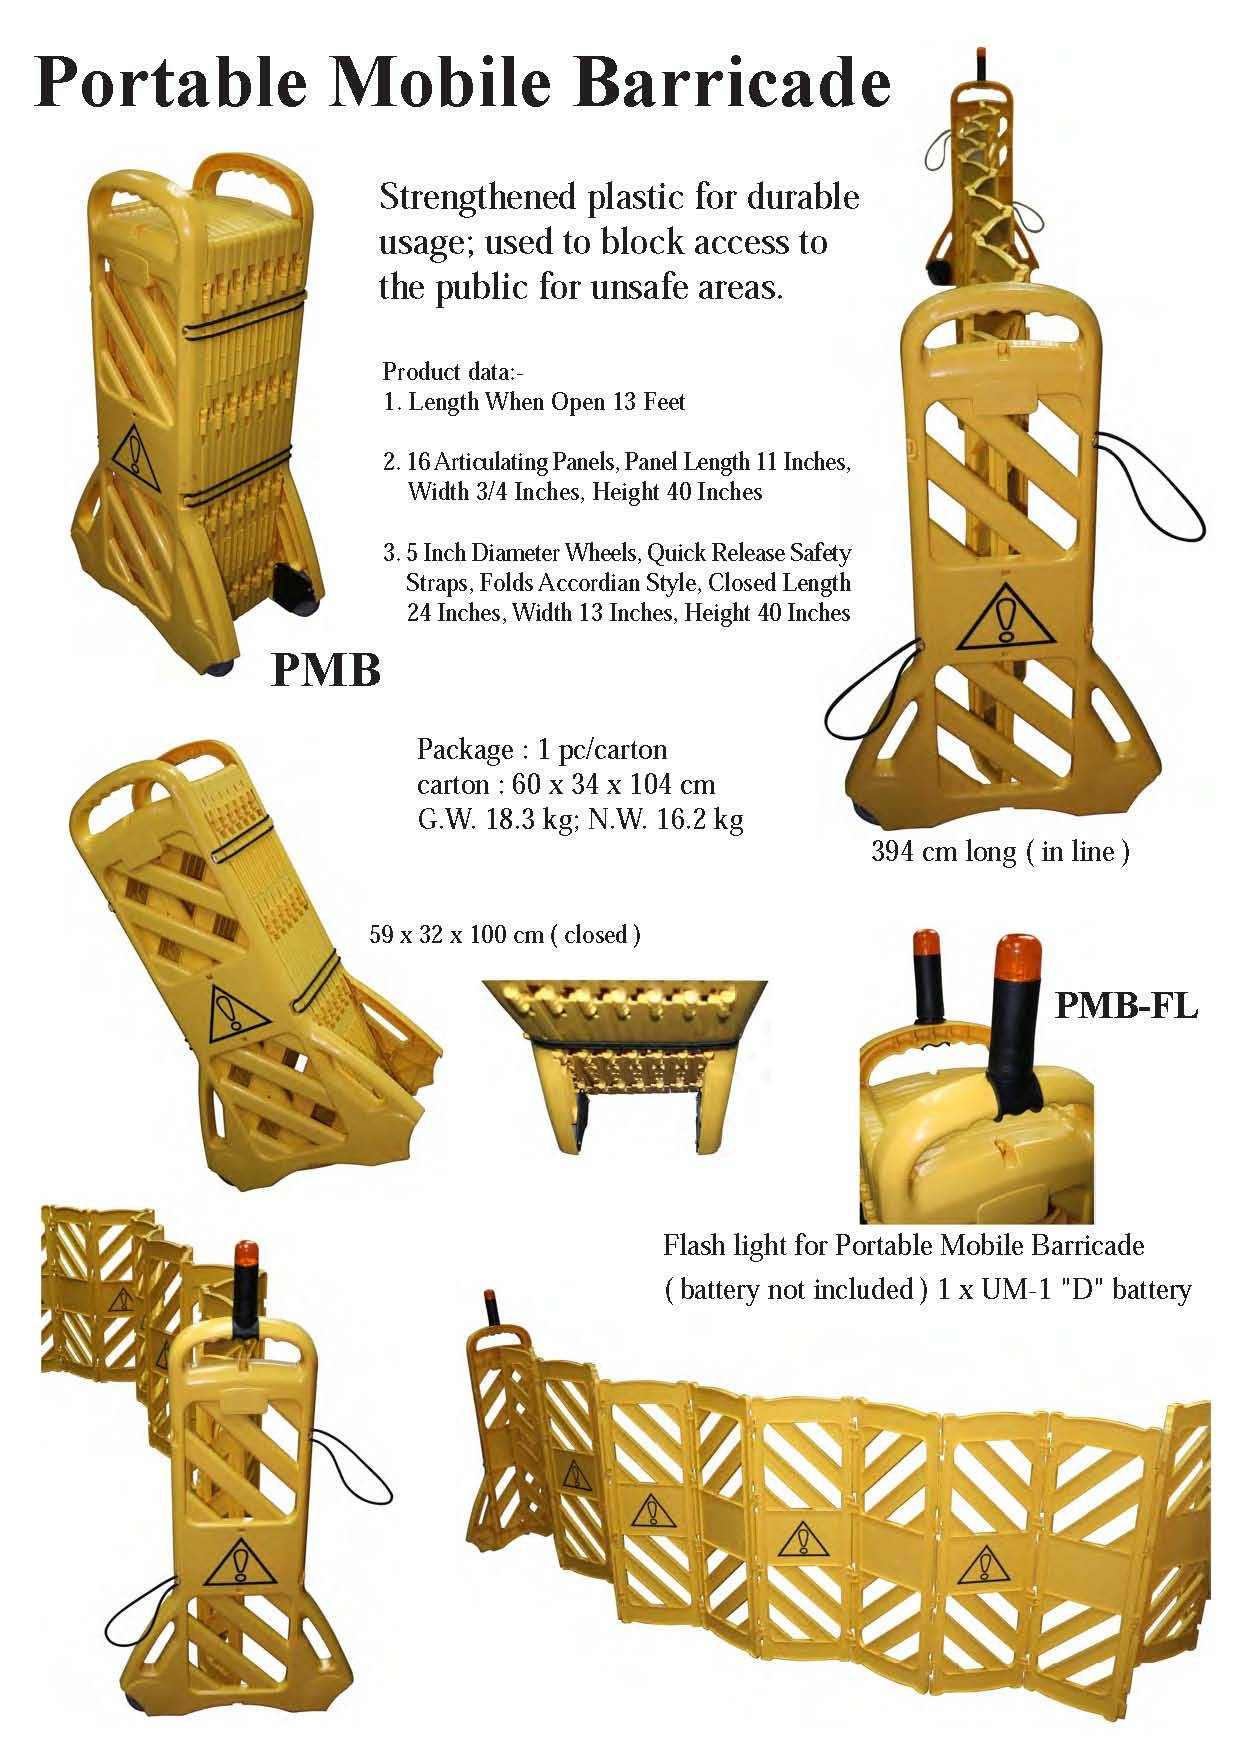 sell portable mobile barricades